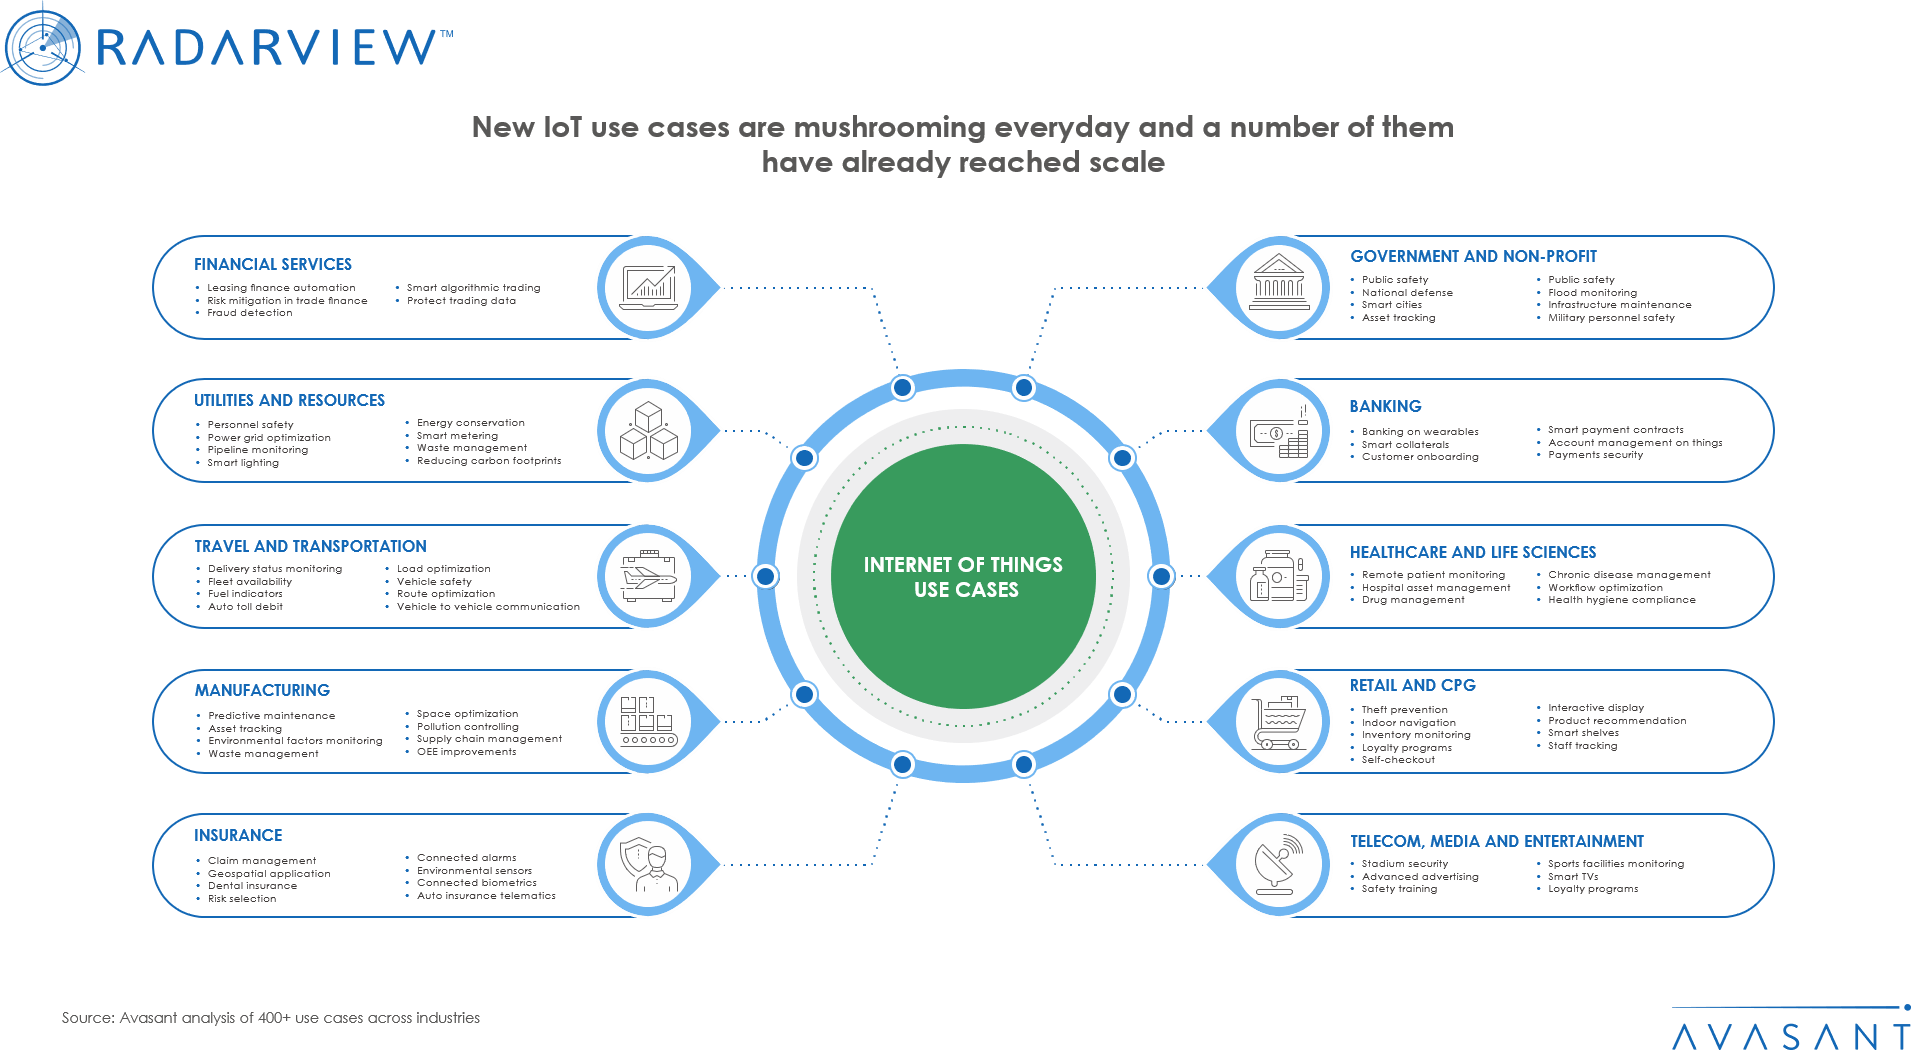 New IoT use cases are mushrooming everyday and a number of them have already reached scale